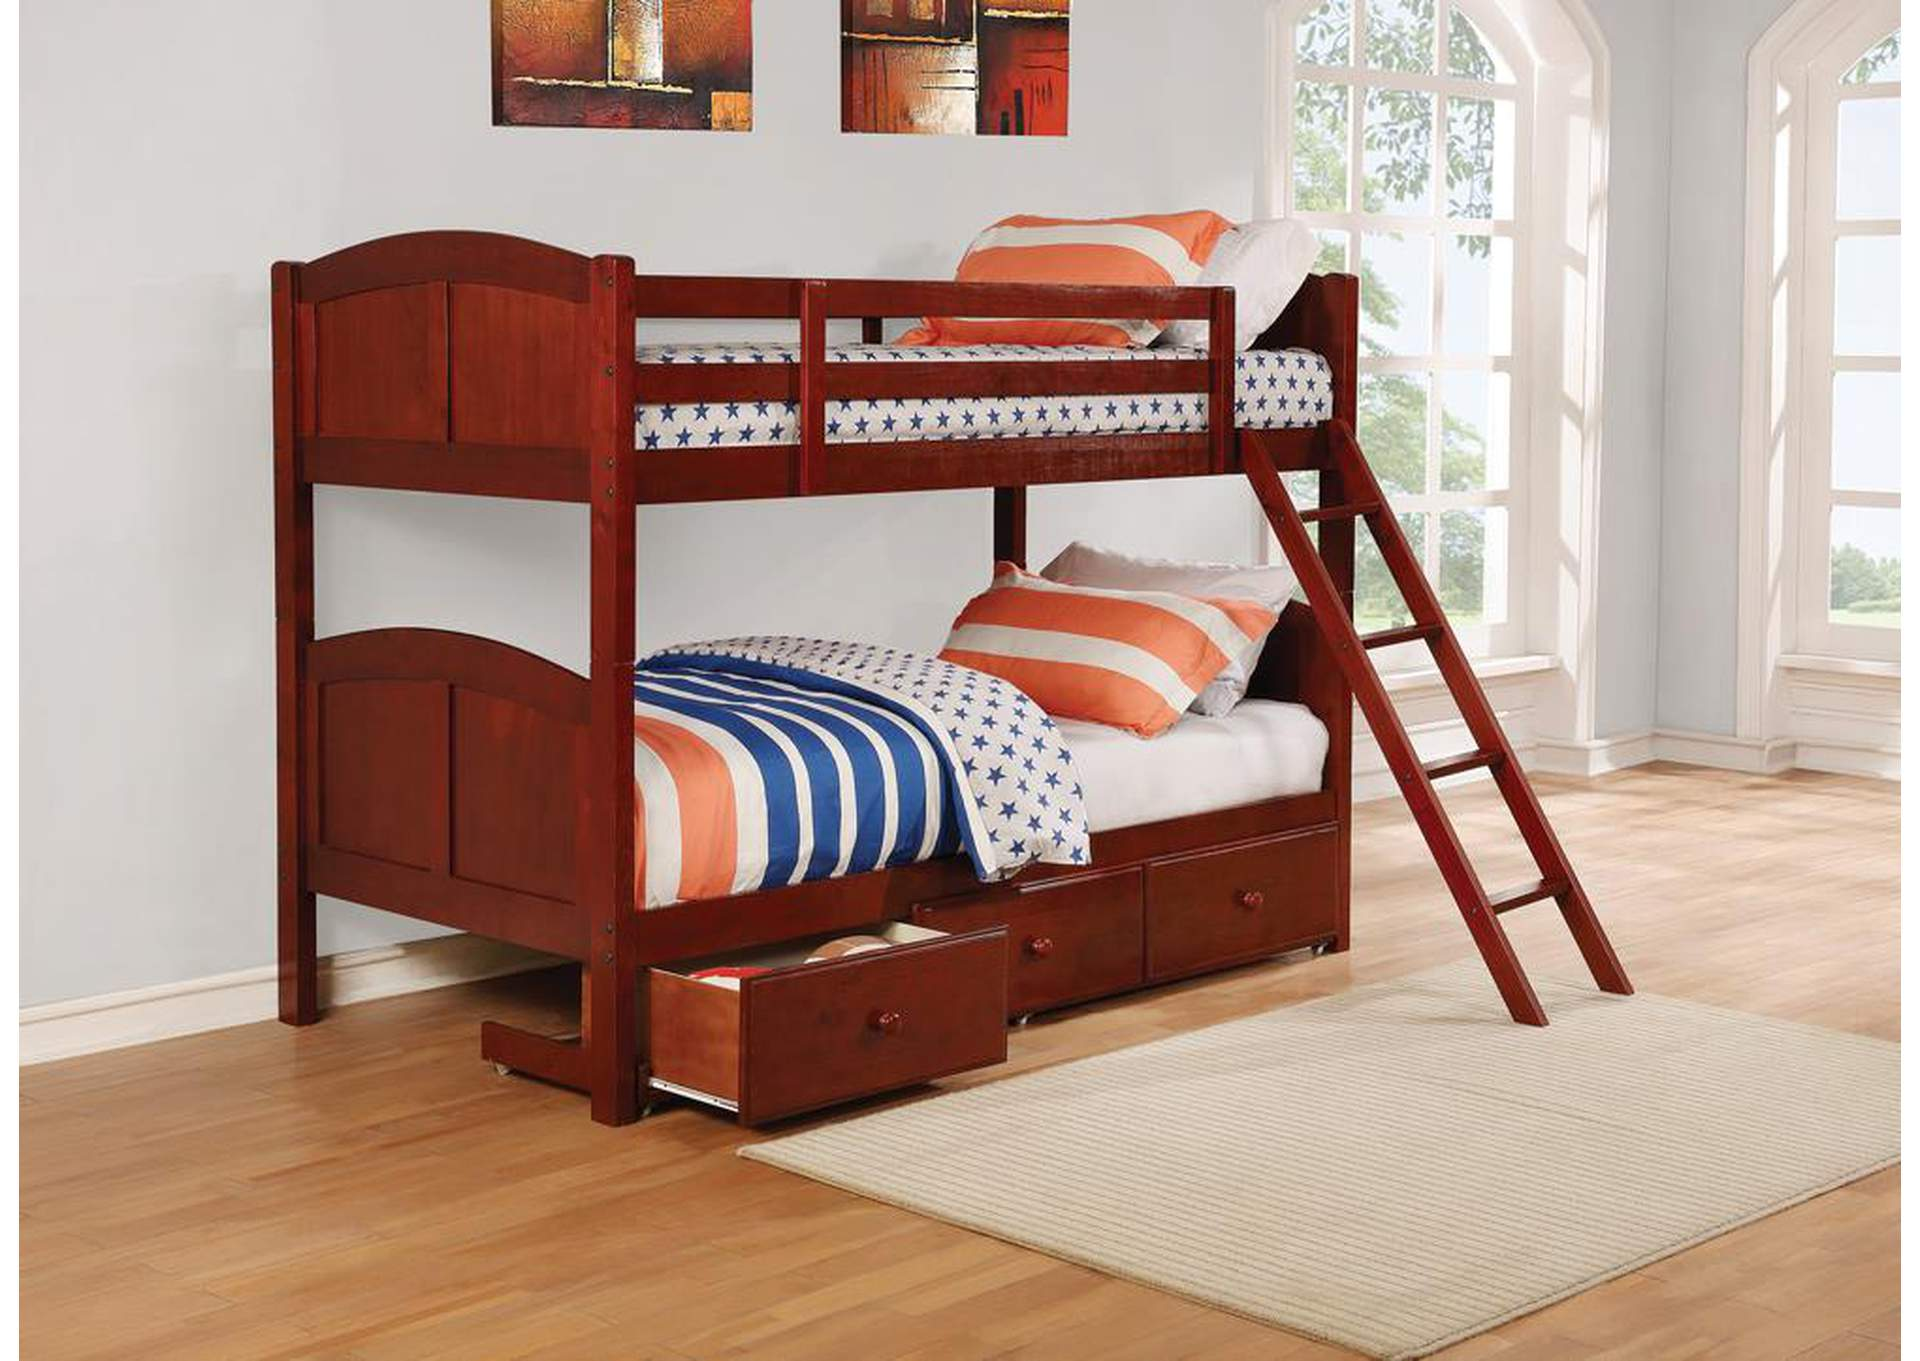 twintwin bunk bed